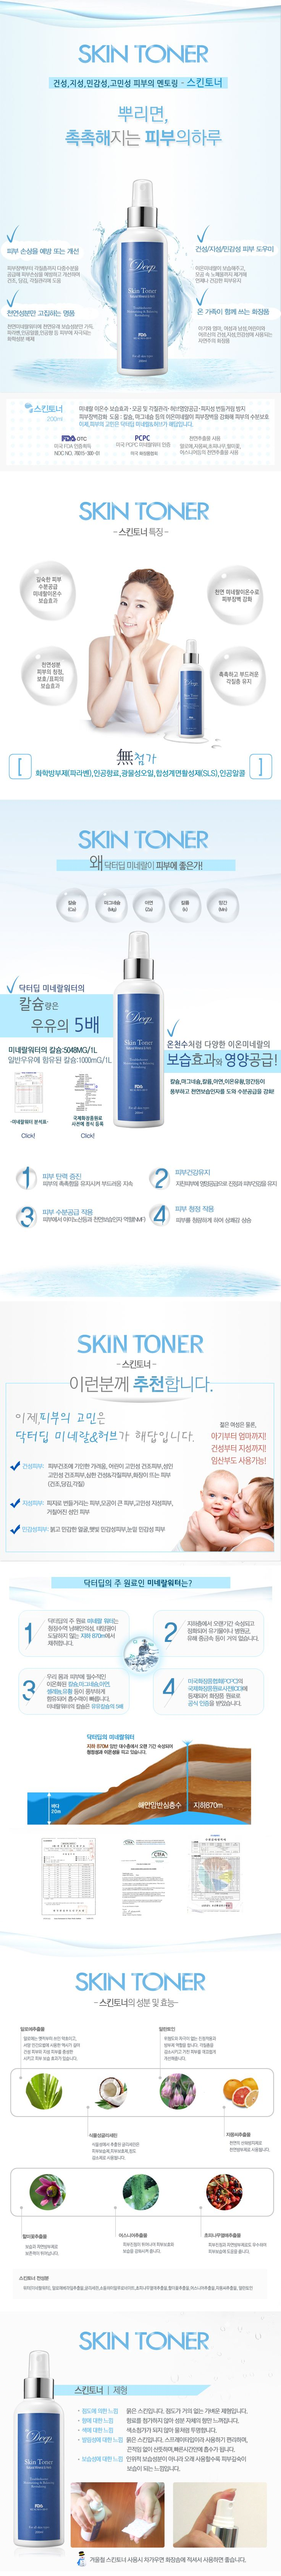 Skin Toner(Product page Design)